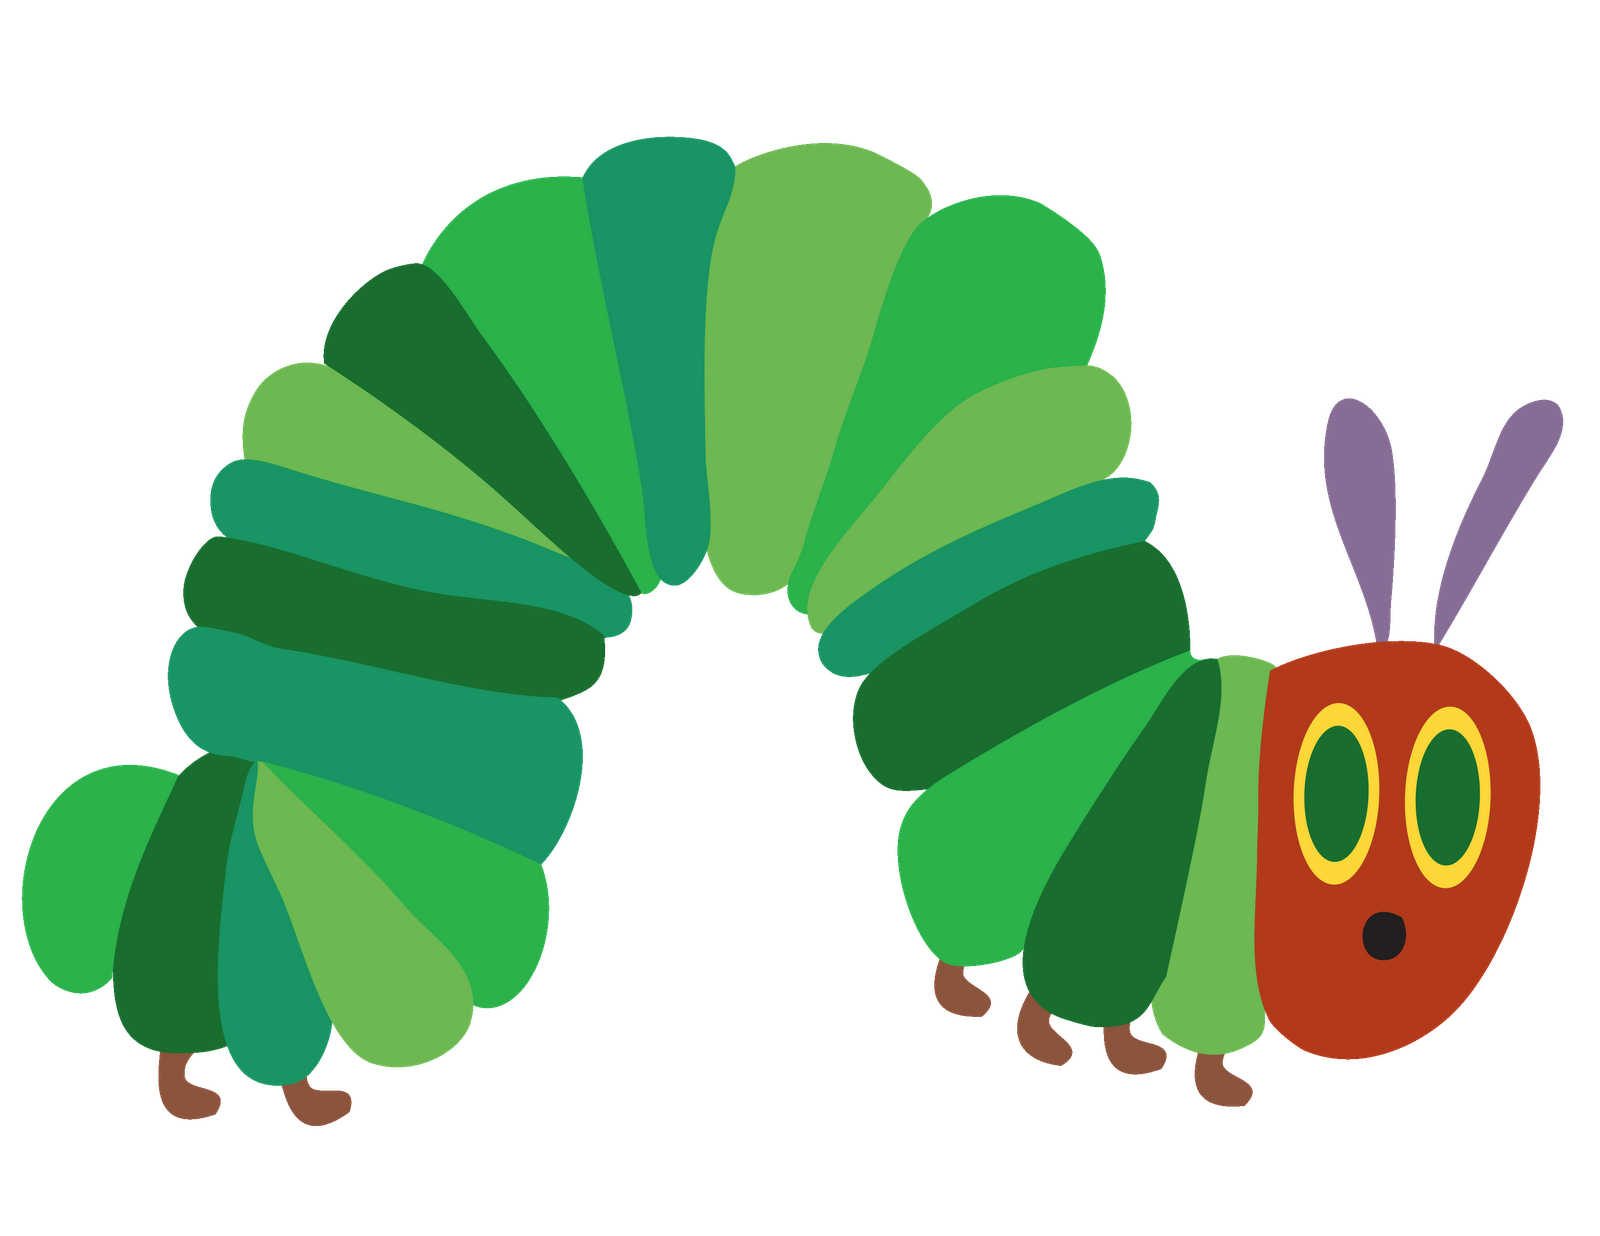 Hungry caterpillar png black and white. The very